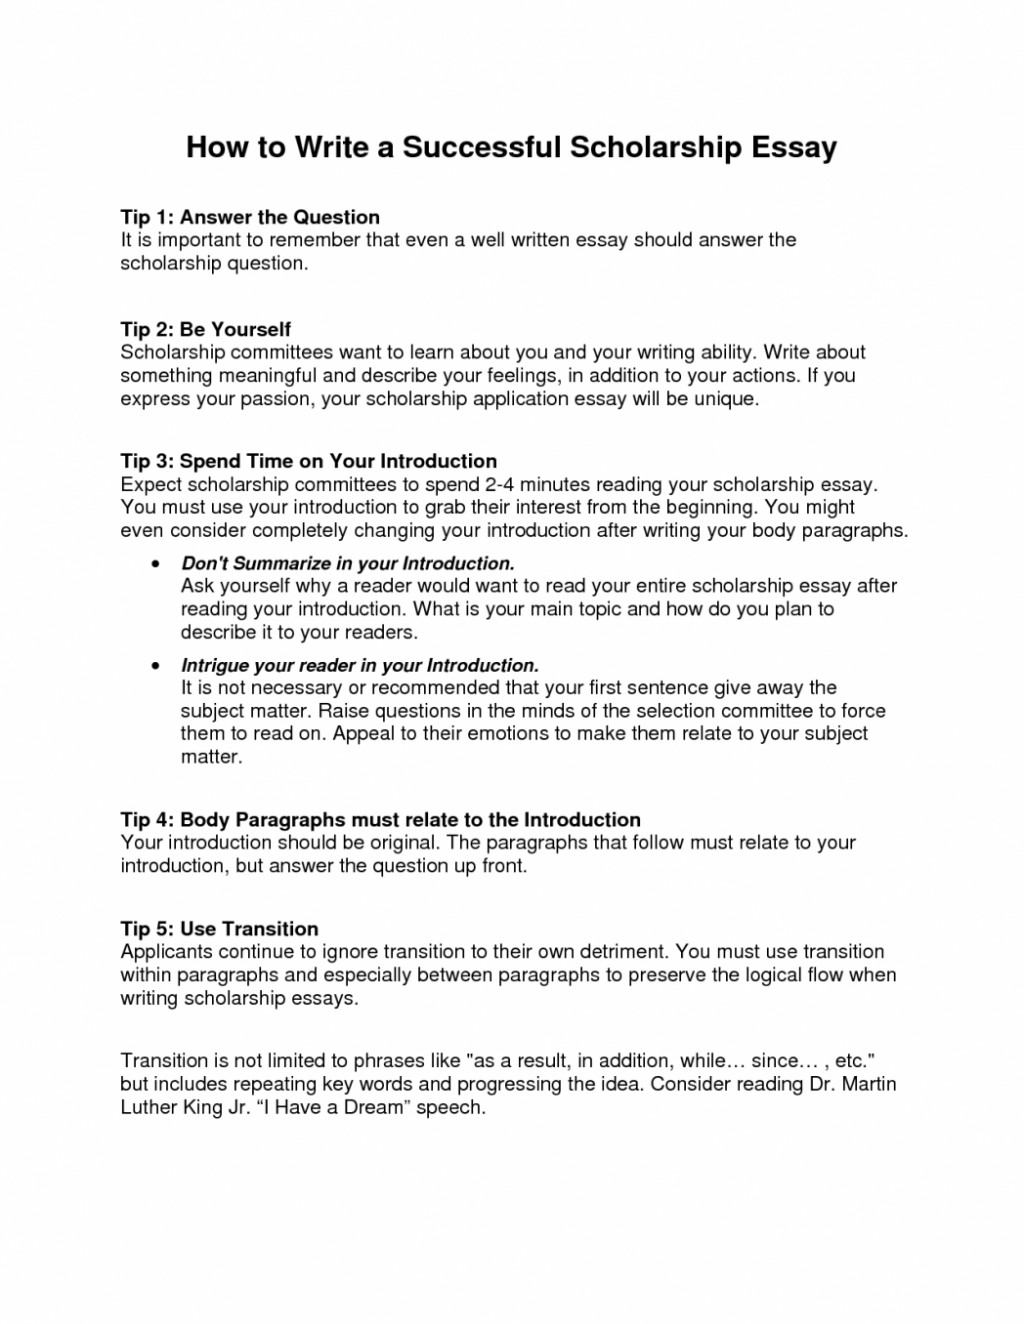 010 How To Write Perfect Essay Example Essays Writing About Yourself Make Online The Wftbt Introduction For Sat University Conclusion Outline Scholarship Pdf Remarkable A College Good Admissions Ged Test Large